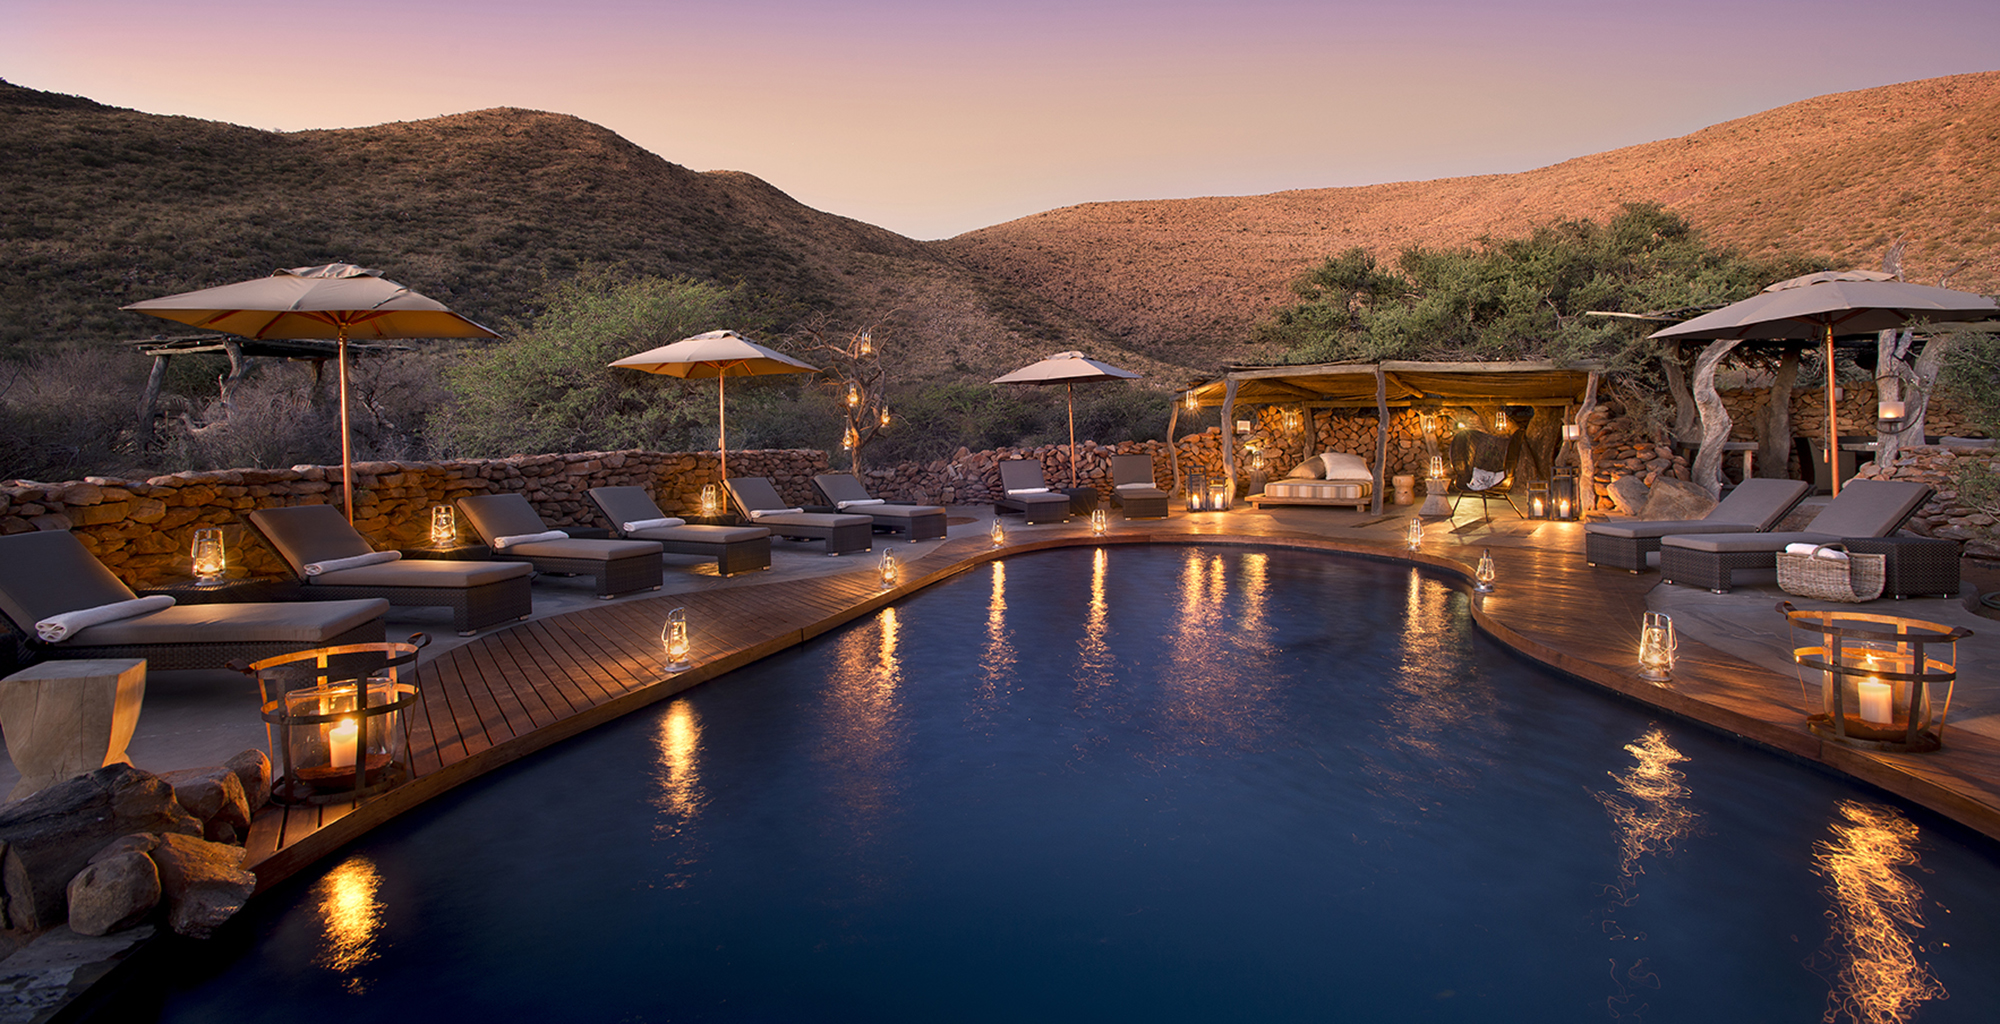 South-Africa-Tarkuni-Swimming-Pool